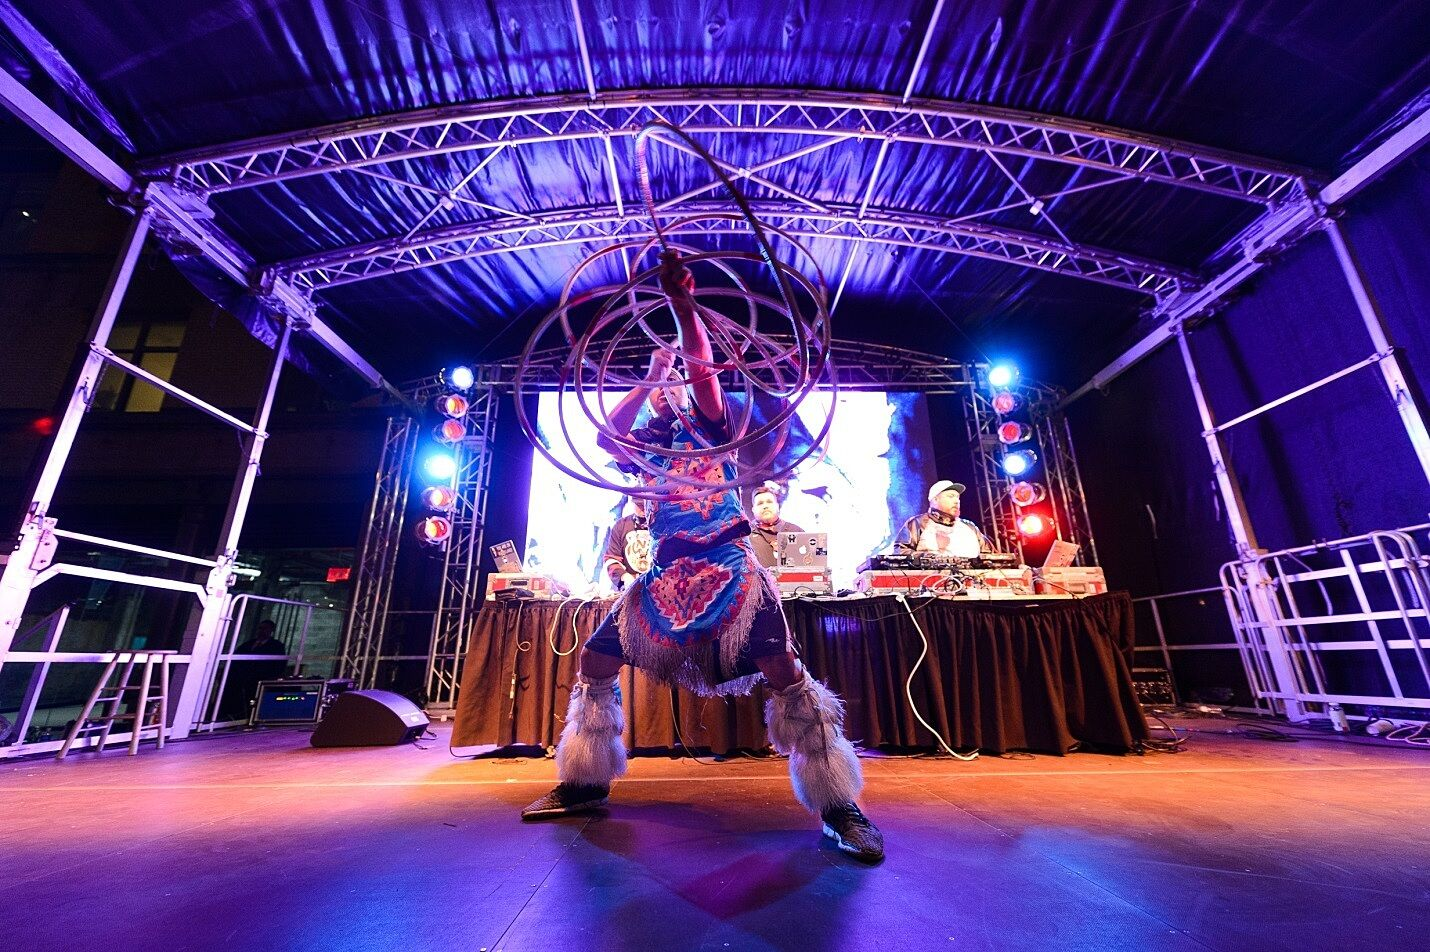 A Native American dancer performs in costume in front of a DJ booth.